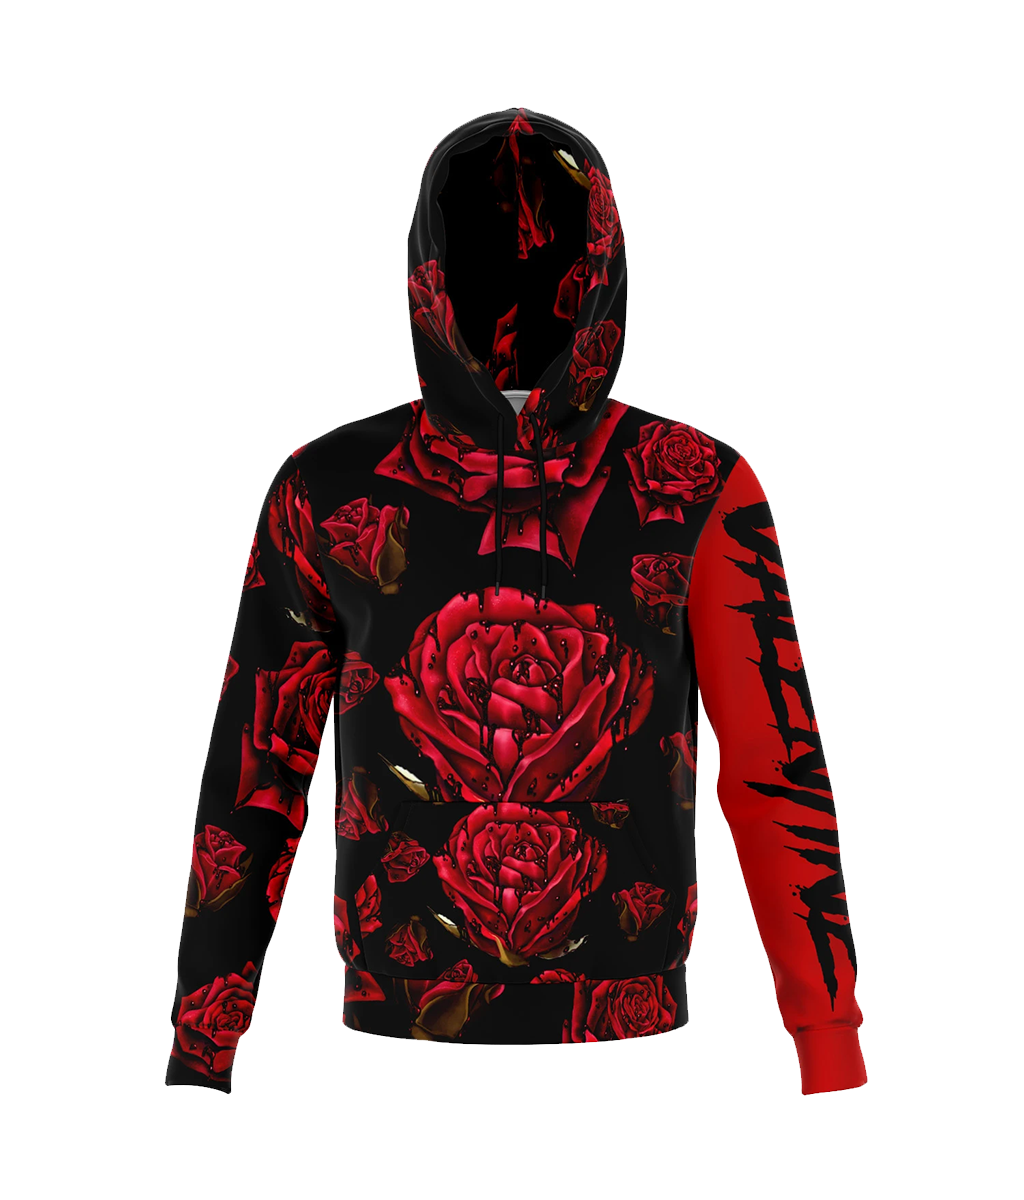 Cherry Valentine - Rose Blood Hoodie